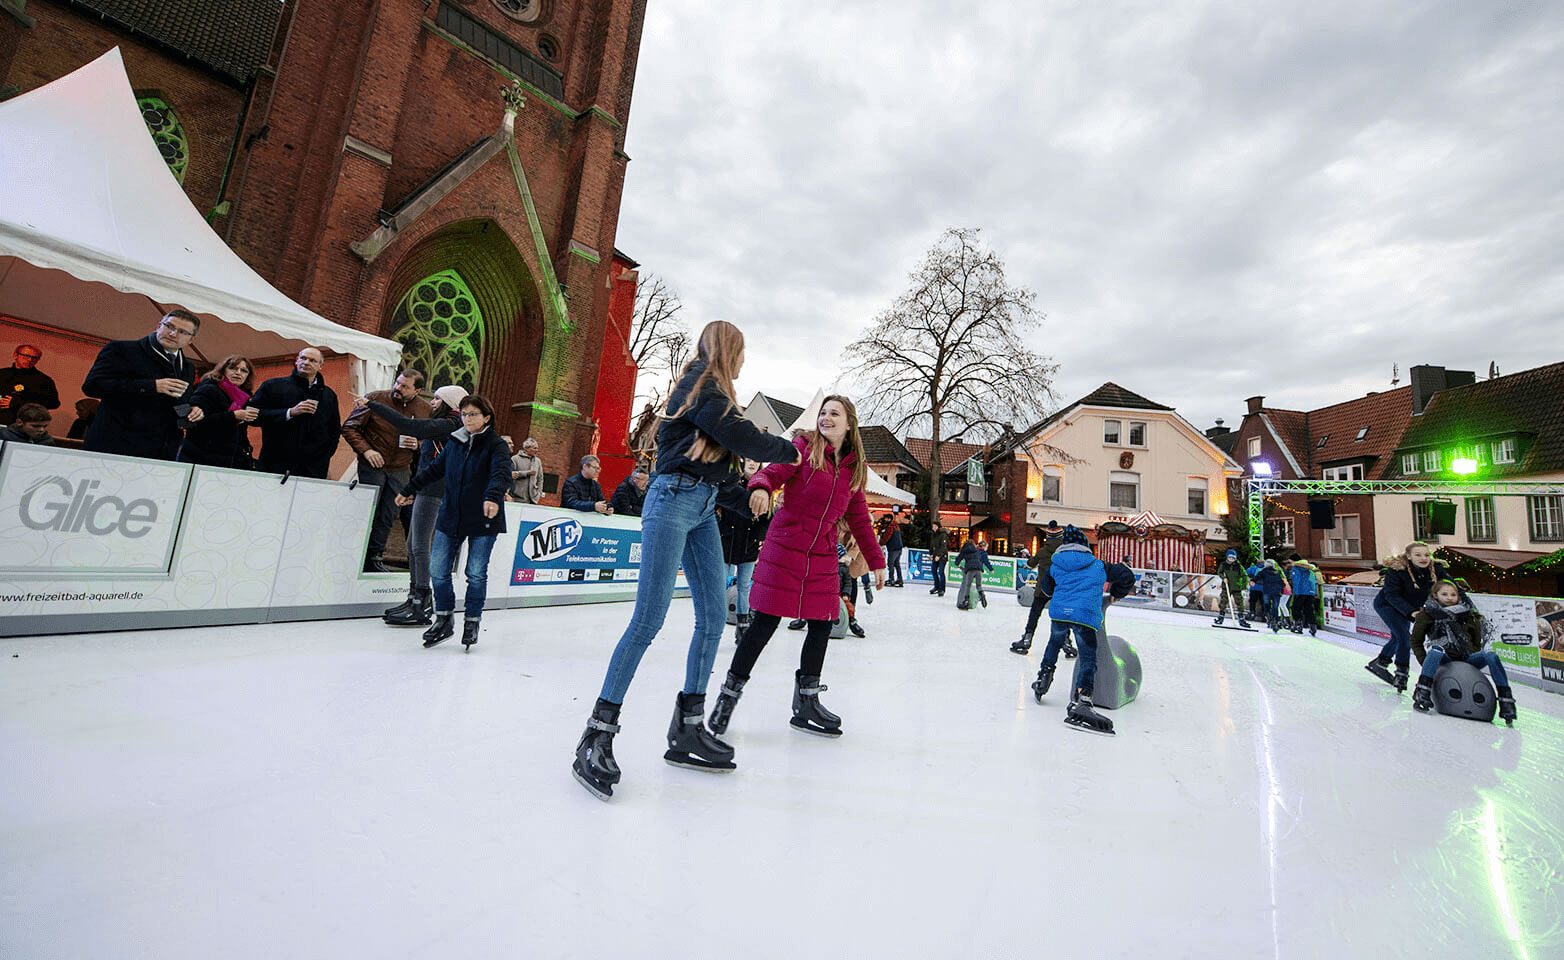 synthetic ice rink on a German town square